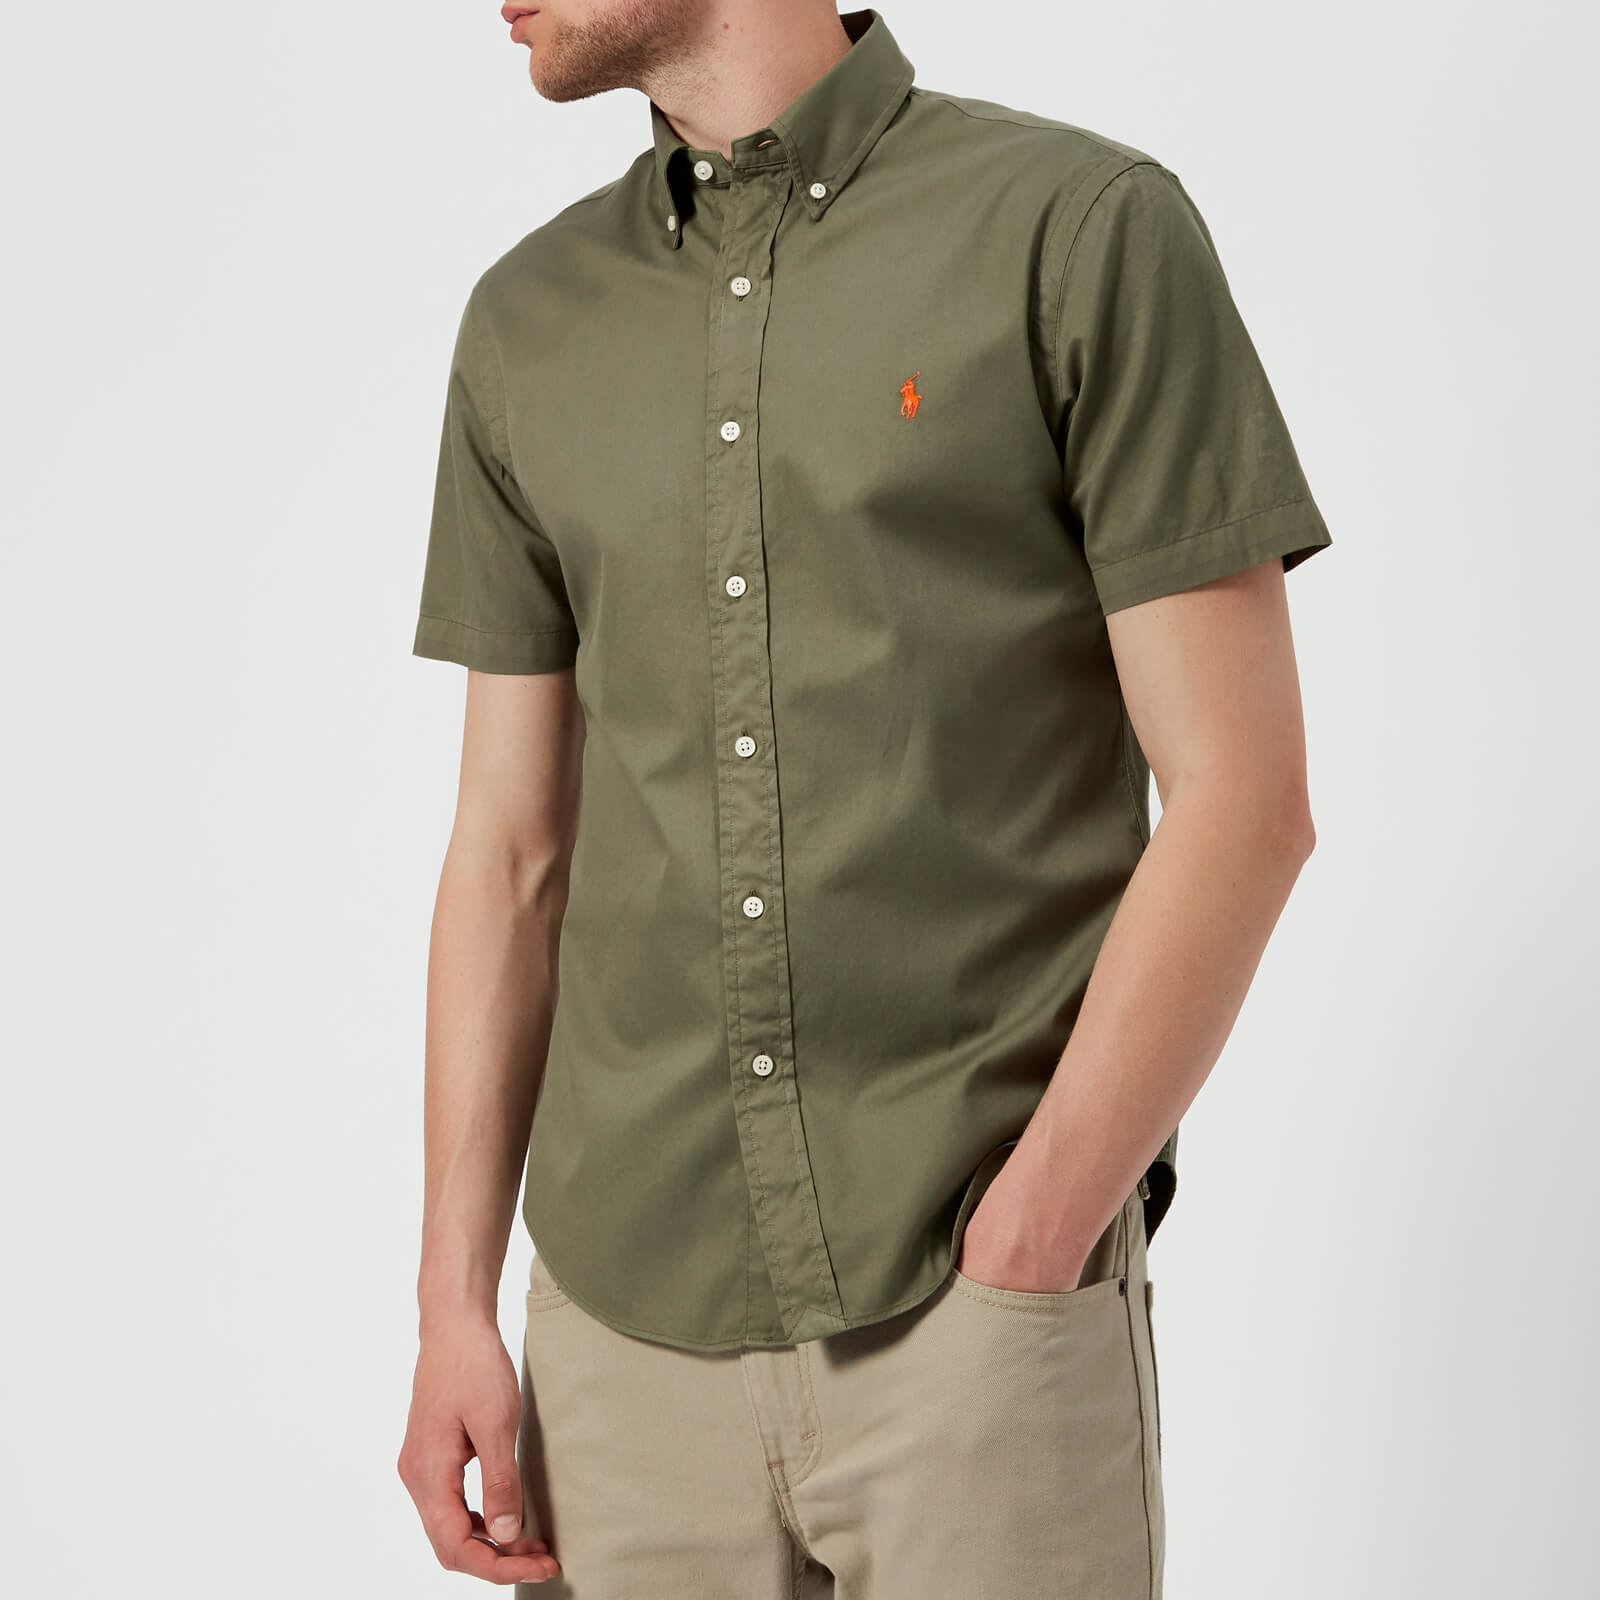 575b126489ca Polo Ralph Lauren Men s Short Sleeve Chino Shirt - Mountain Green - Free UK  Delivery over £50